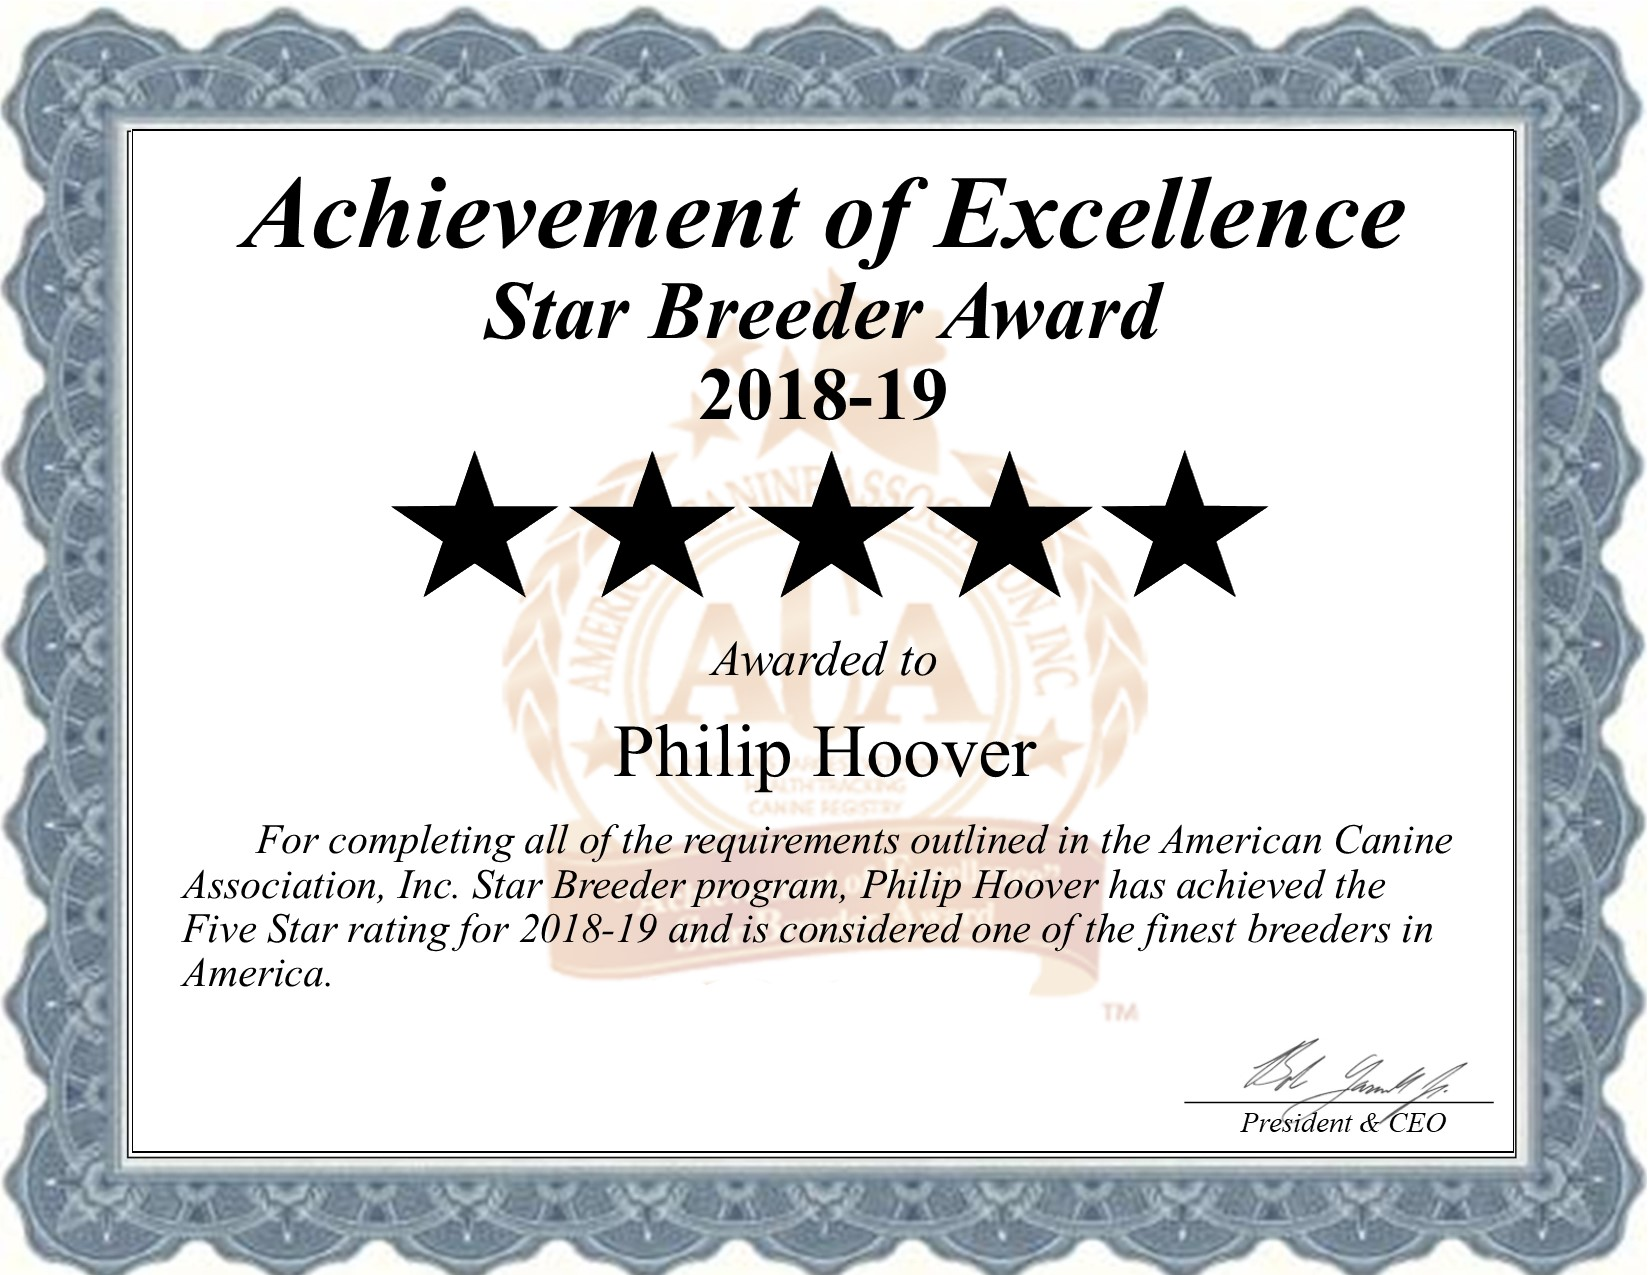 philip, hoover, dog, breeder, philip-hoover, dog-breeder, kennel, kennels, star, certificate, dog, Memphis, mo, missouri, usda, no,  43-A-5673, 43a5673, breeding, pup, puppy, mill, puppymill, dogs, inspections, violations, veterinary, reports, aca, ica